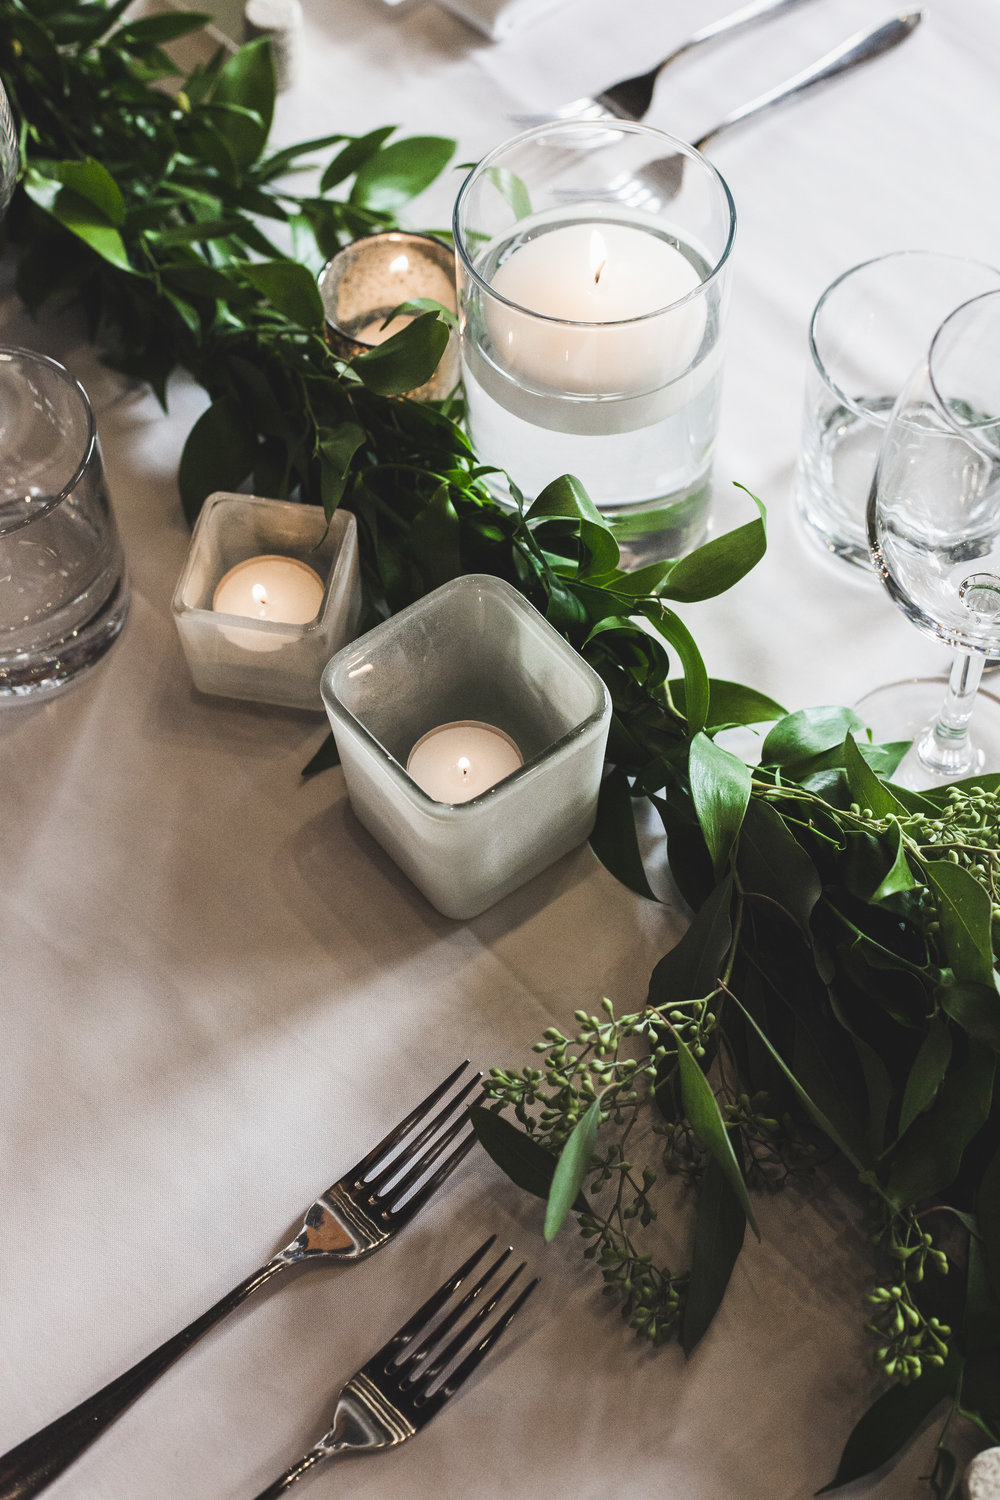 Brittany + Steven | Garland tablescape | Photo: Shlomi Amiga Weddings